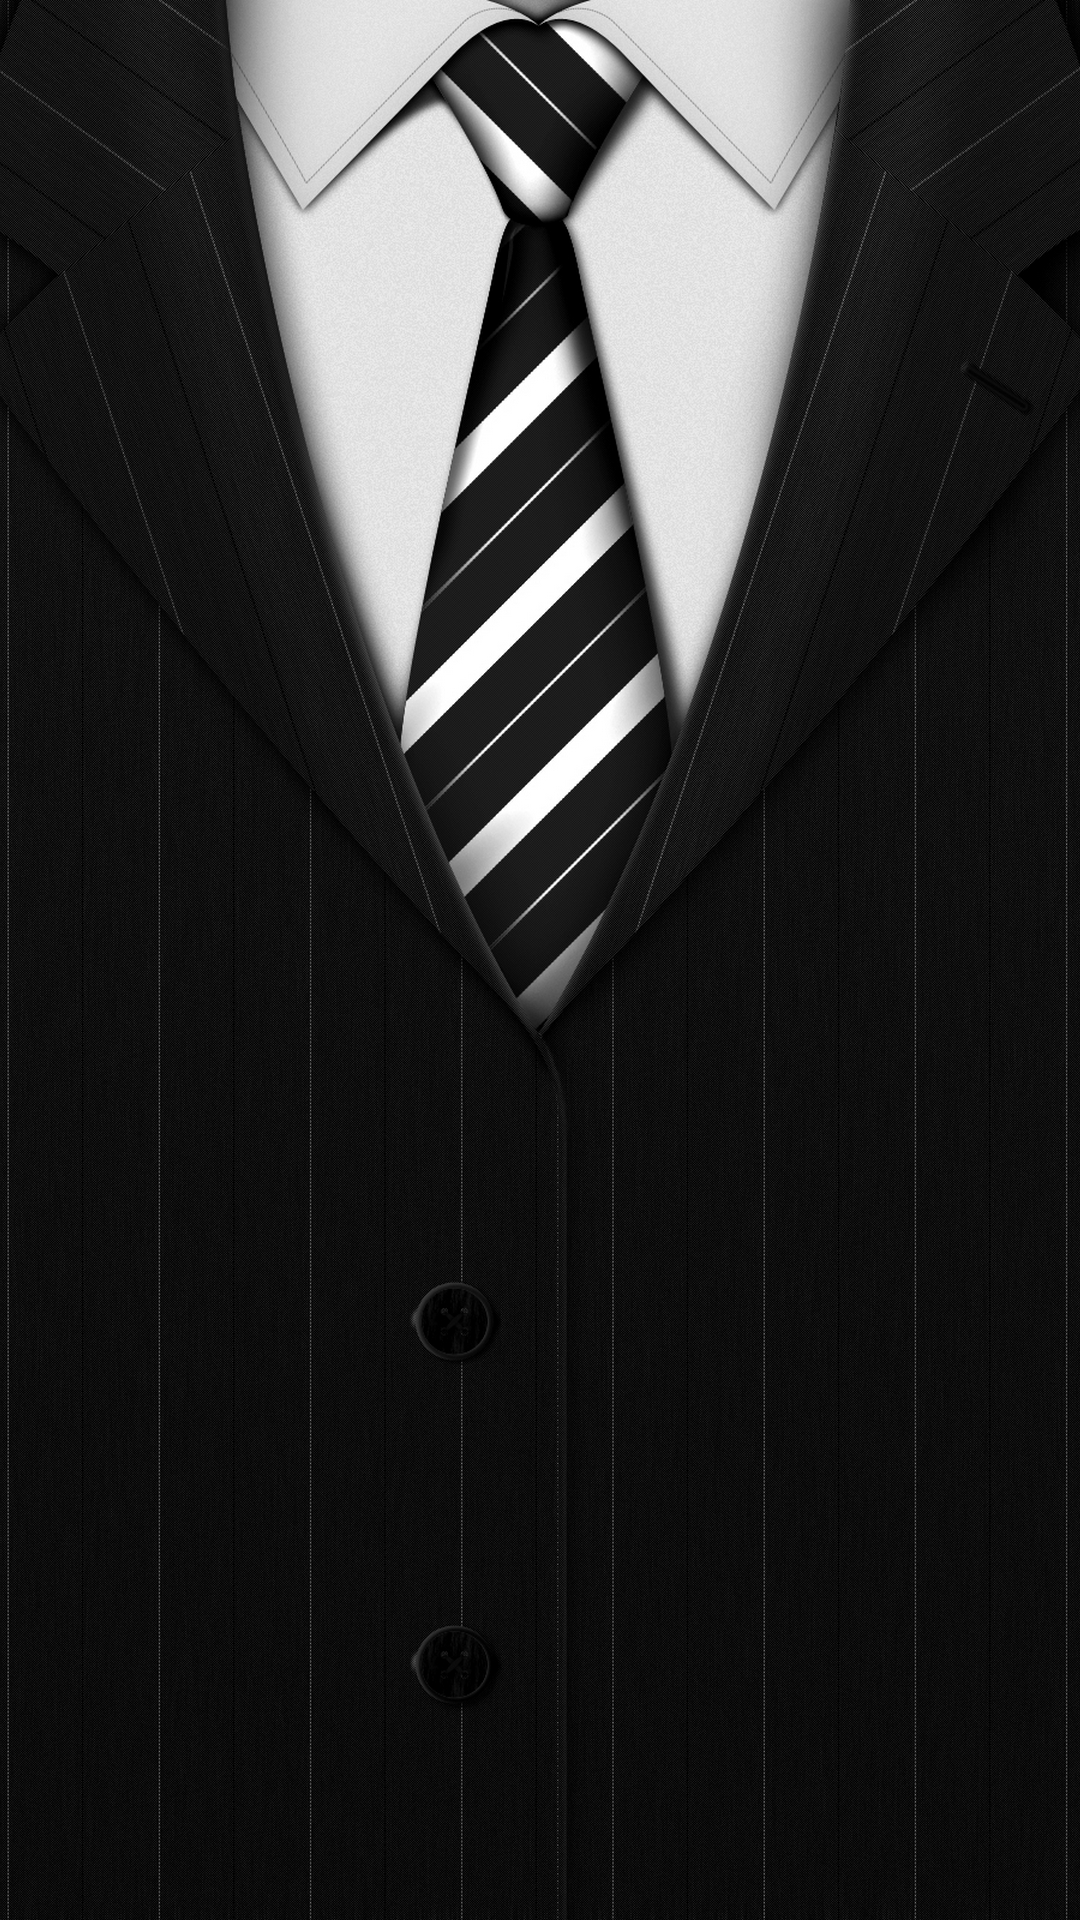 wallpaper for galaxy s4 with suite and tie in 1080x1920 resolution